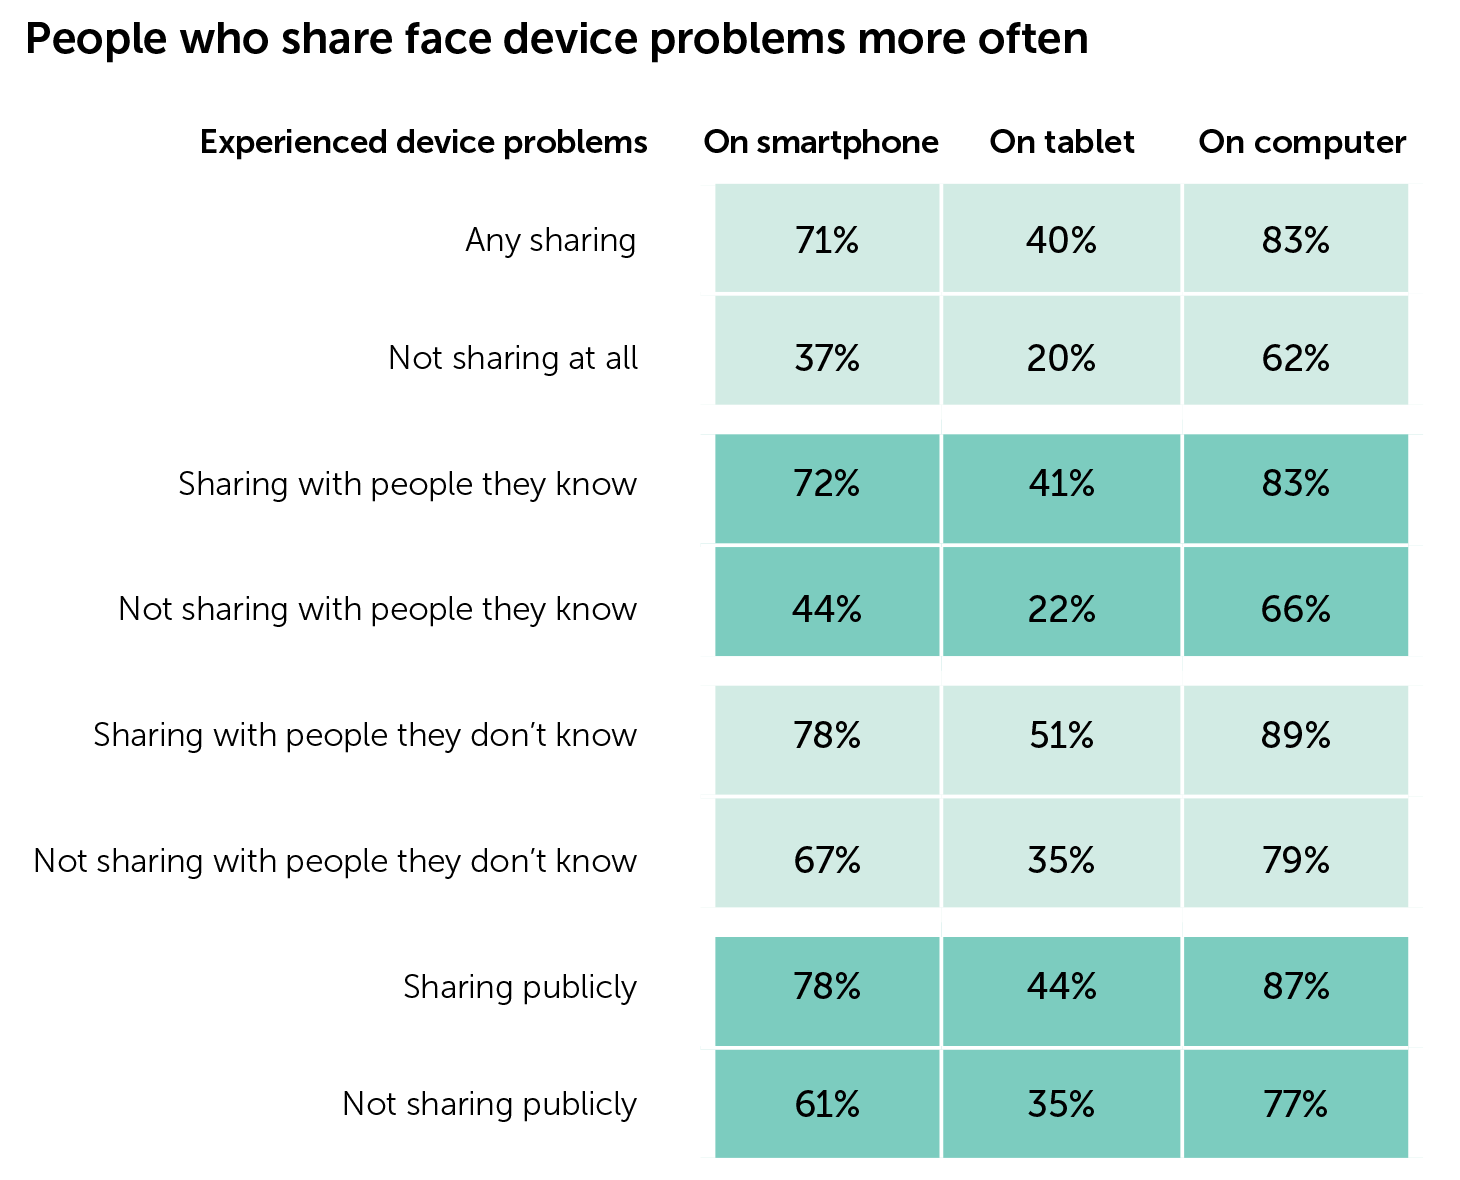 People who share face device problems more often